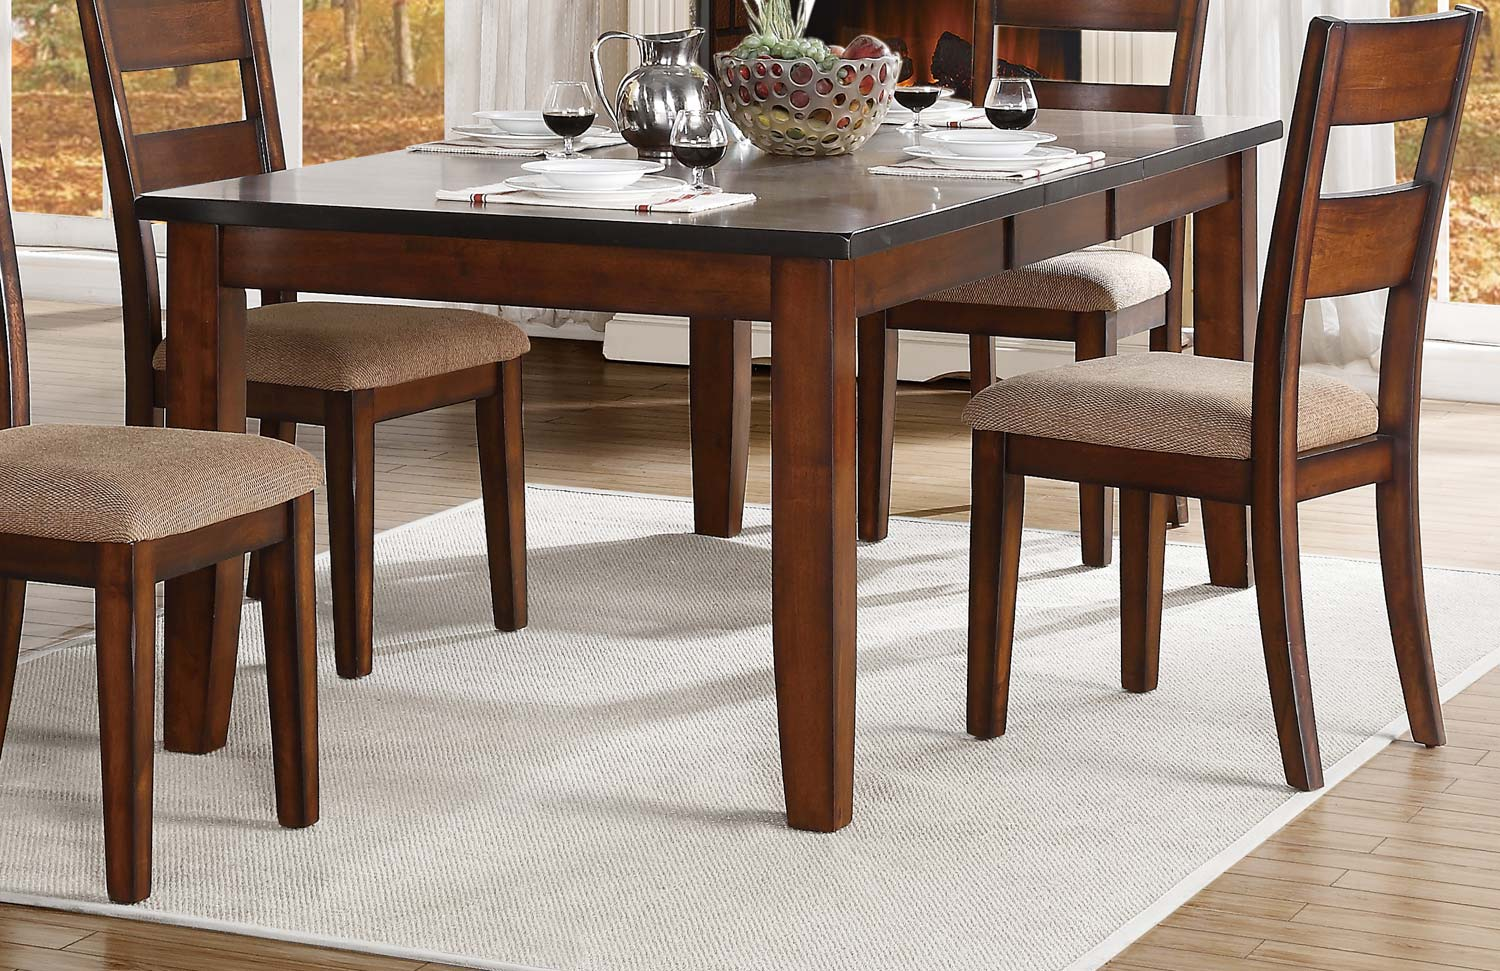 Homelegance Gallatin Dining Table With Leaf - Warm Cherry 5057-78